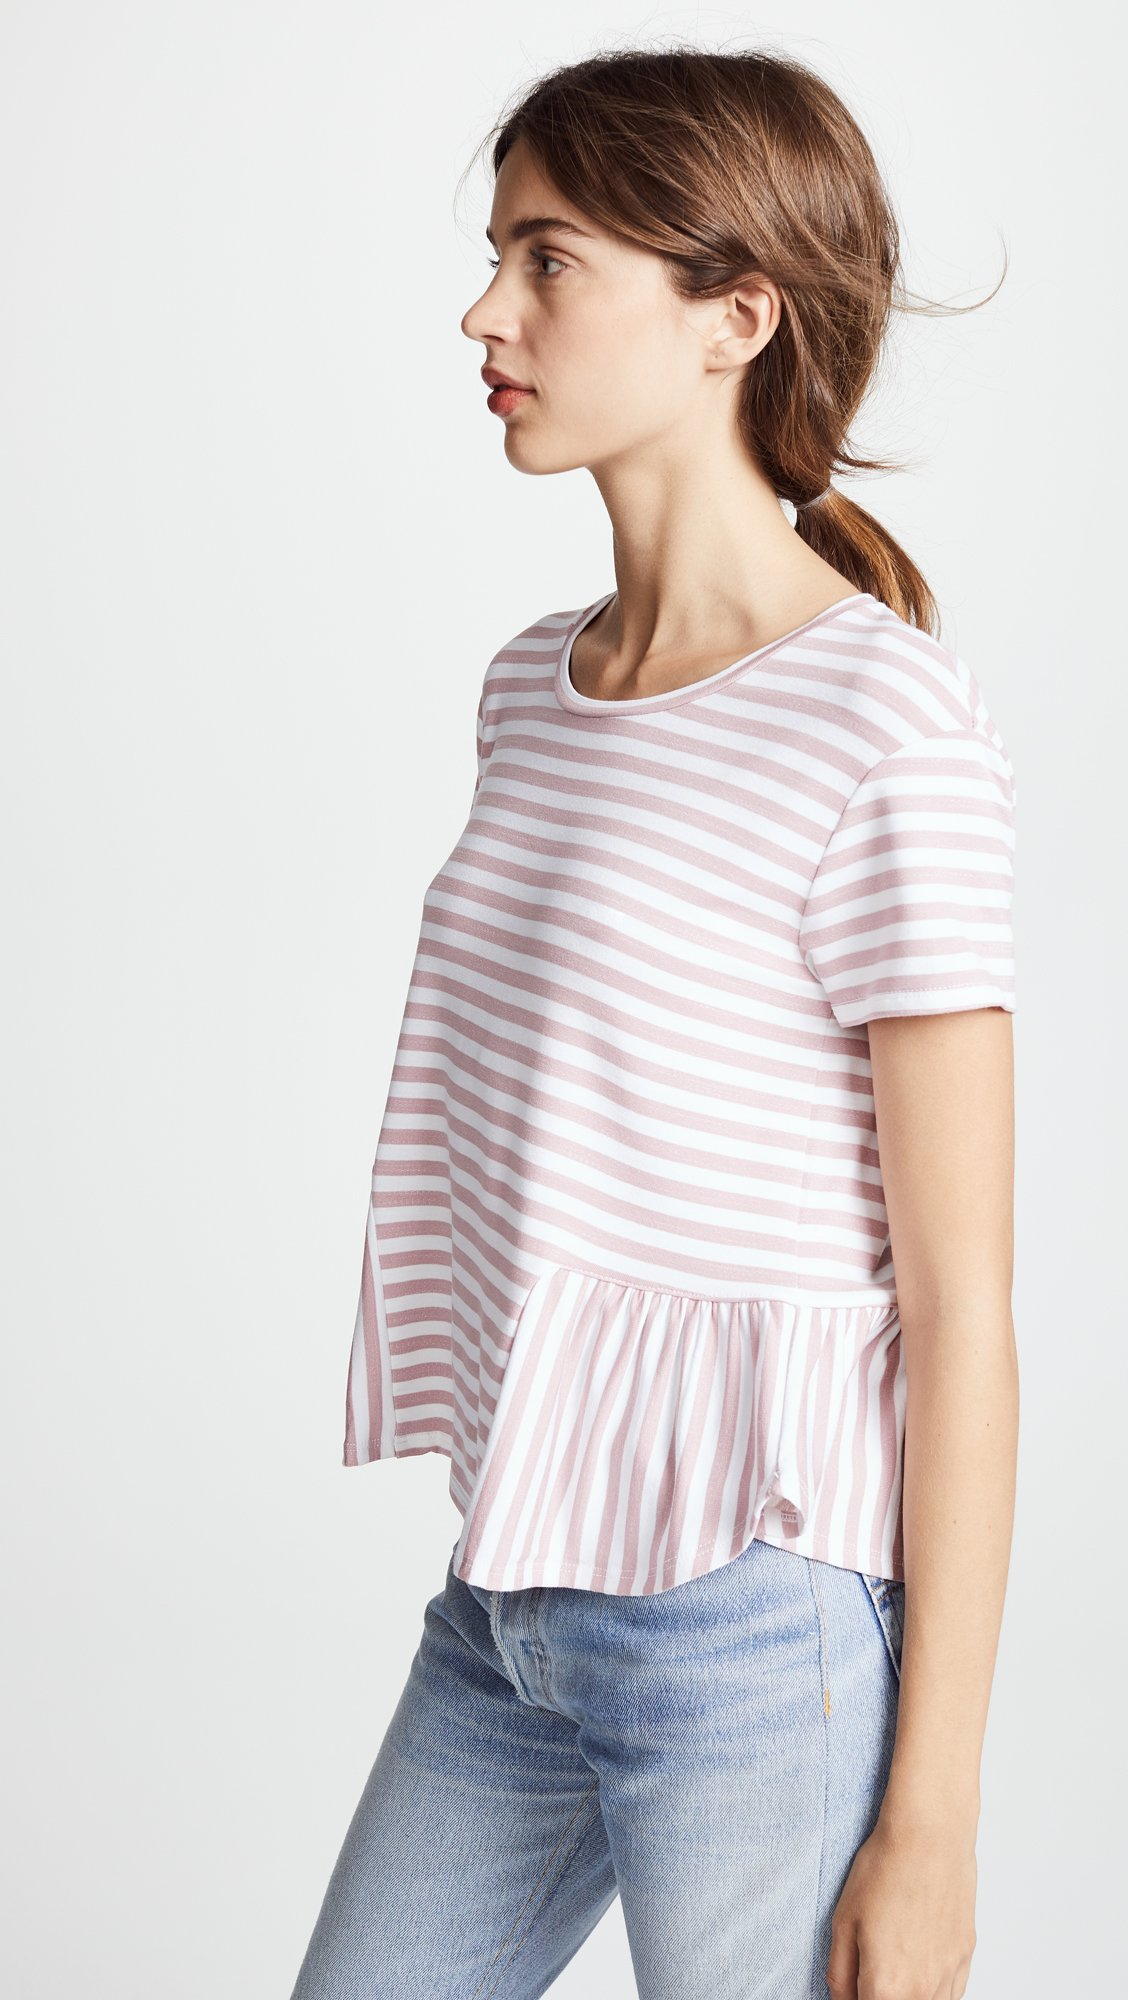 Three Dots Women's Cape Cod Stripe Loose Short Top, Rose/White, Extra Small by Three Dots (Image #4)